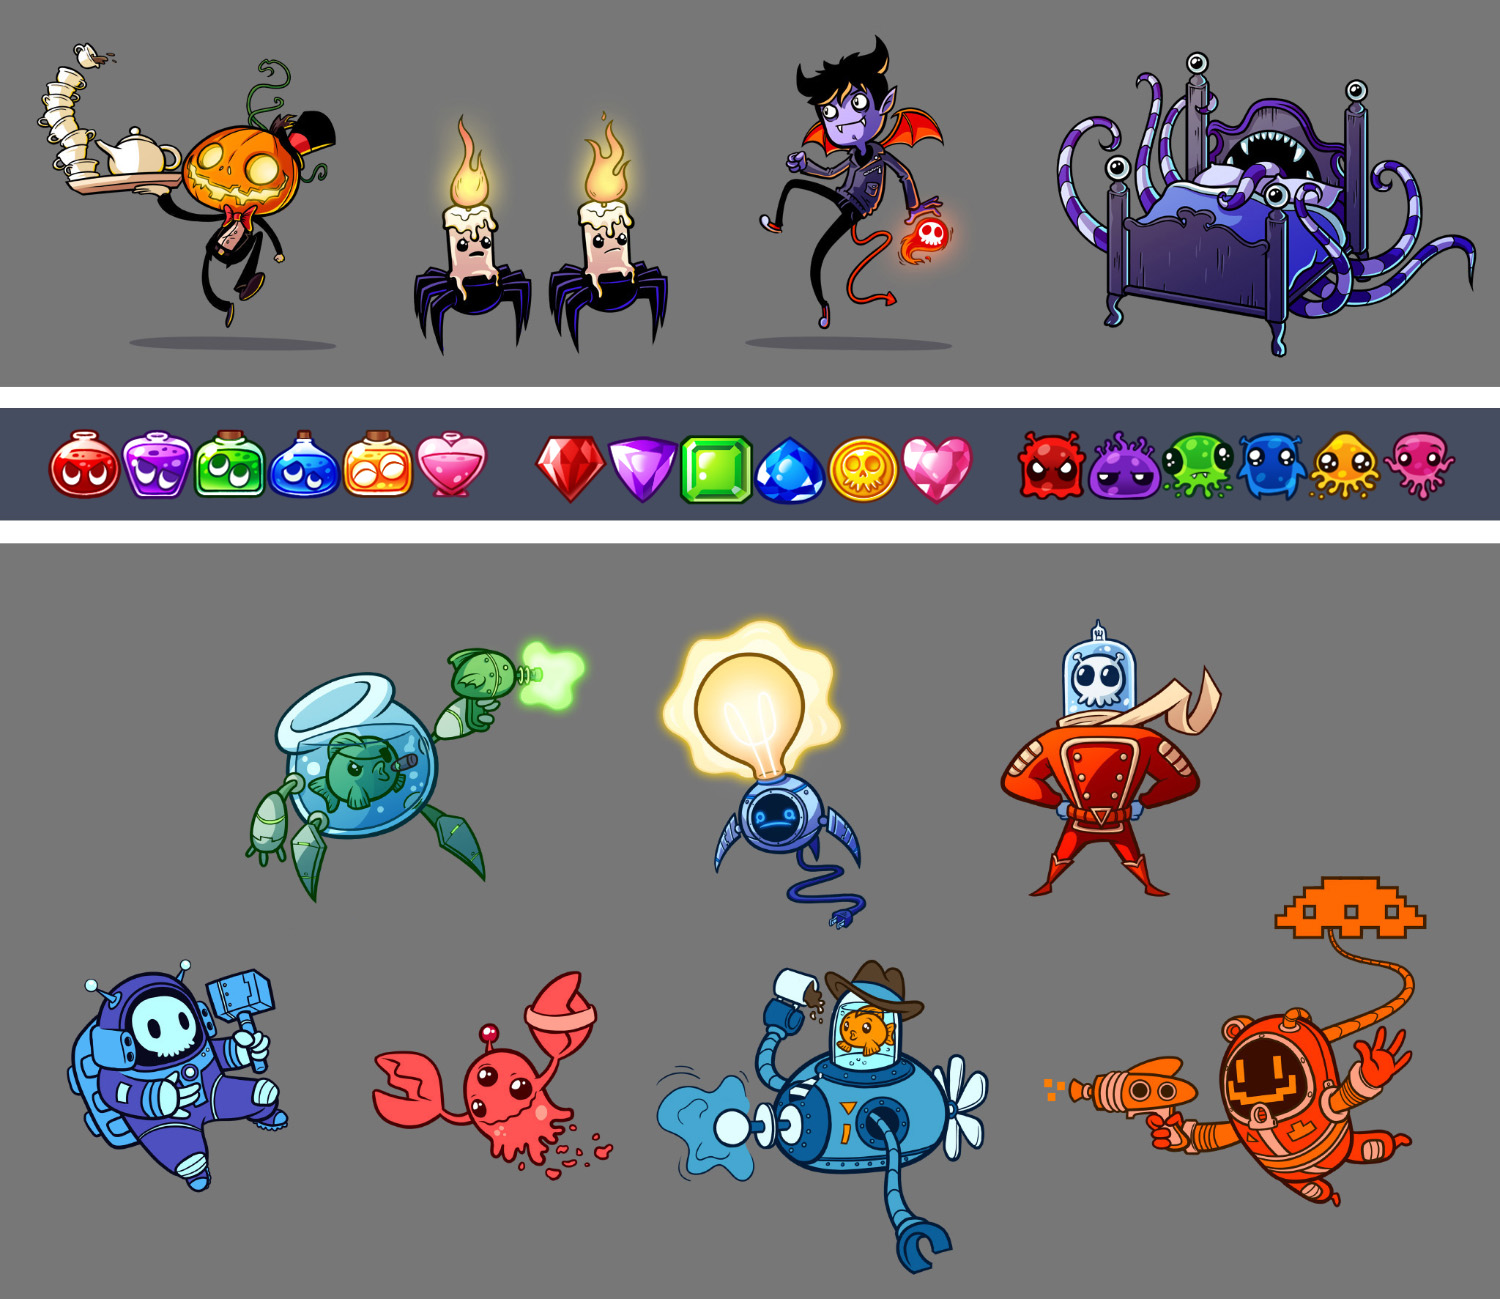 Gothic character designs / Puzzle pieces / Humorous sci-fi characer designs